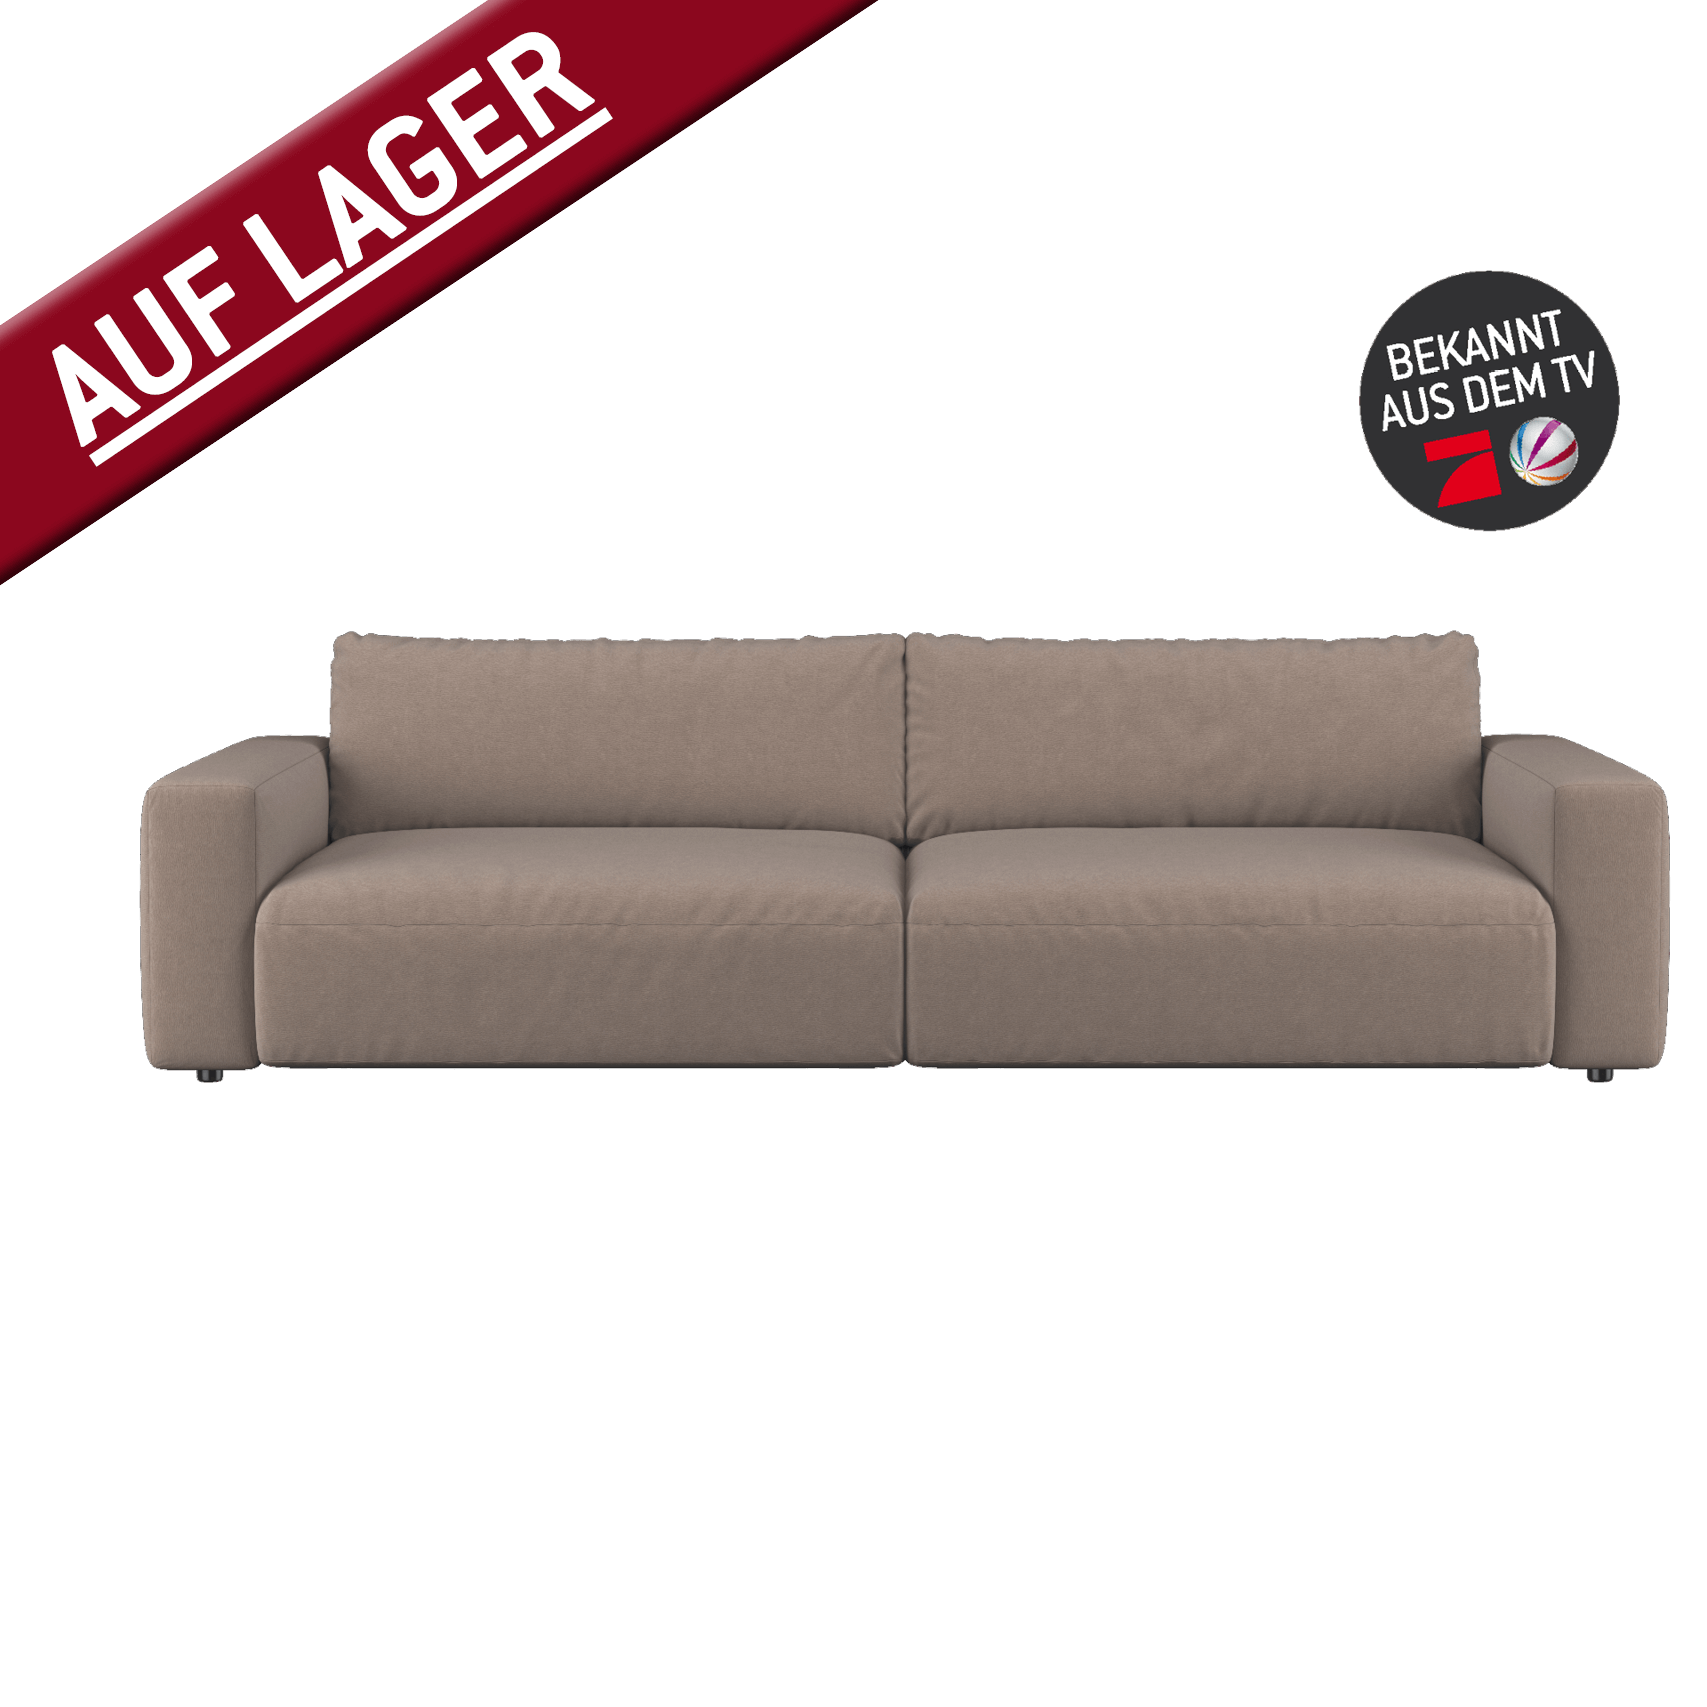 Lucia | SOFAS & SESSEL | Shop Gallery M